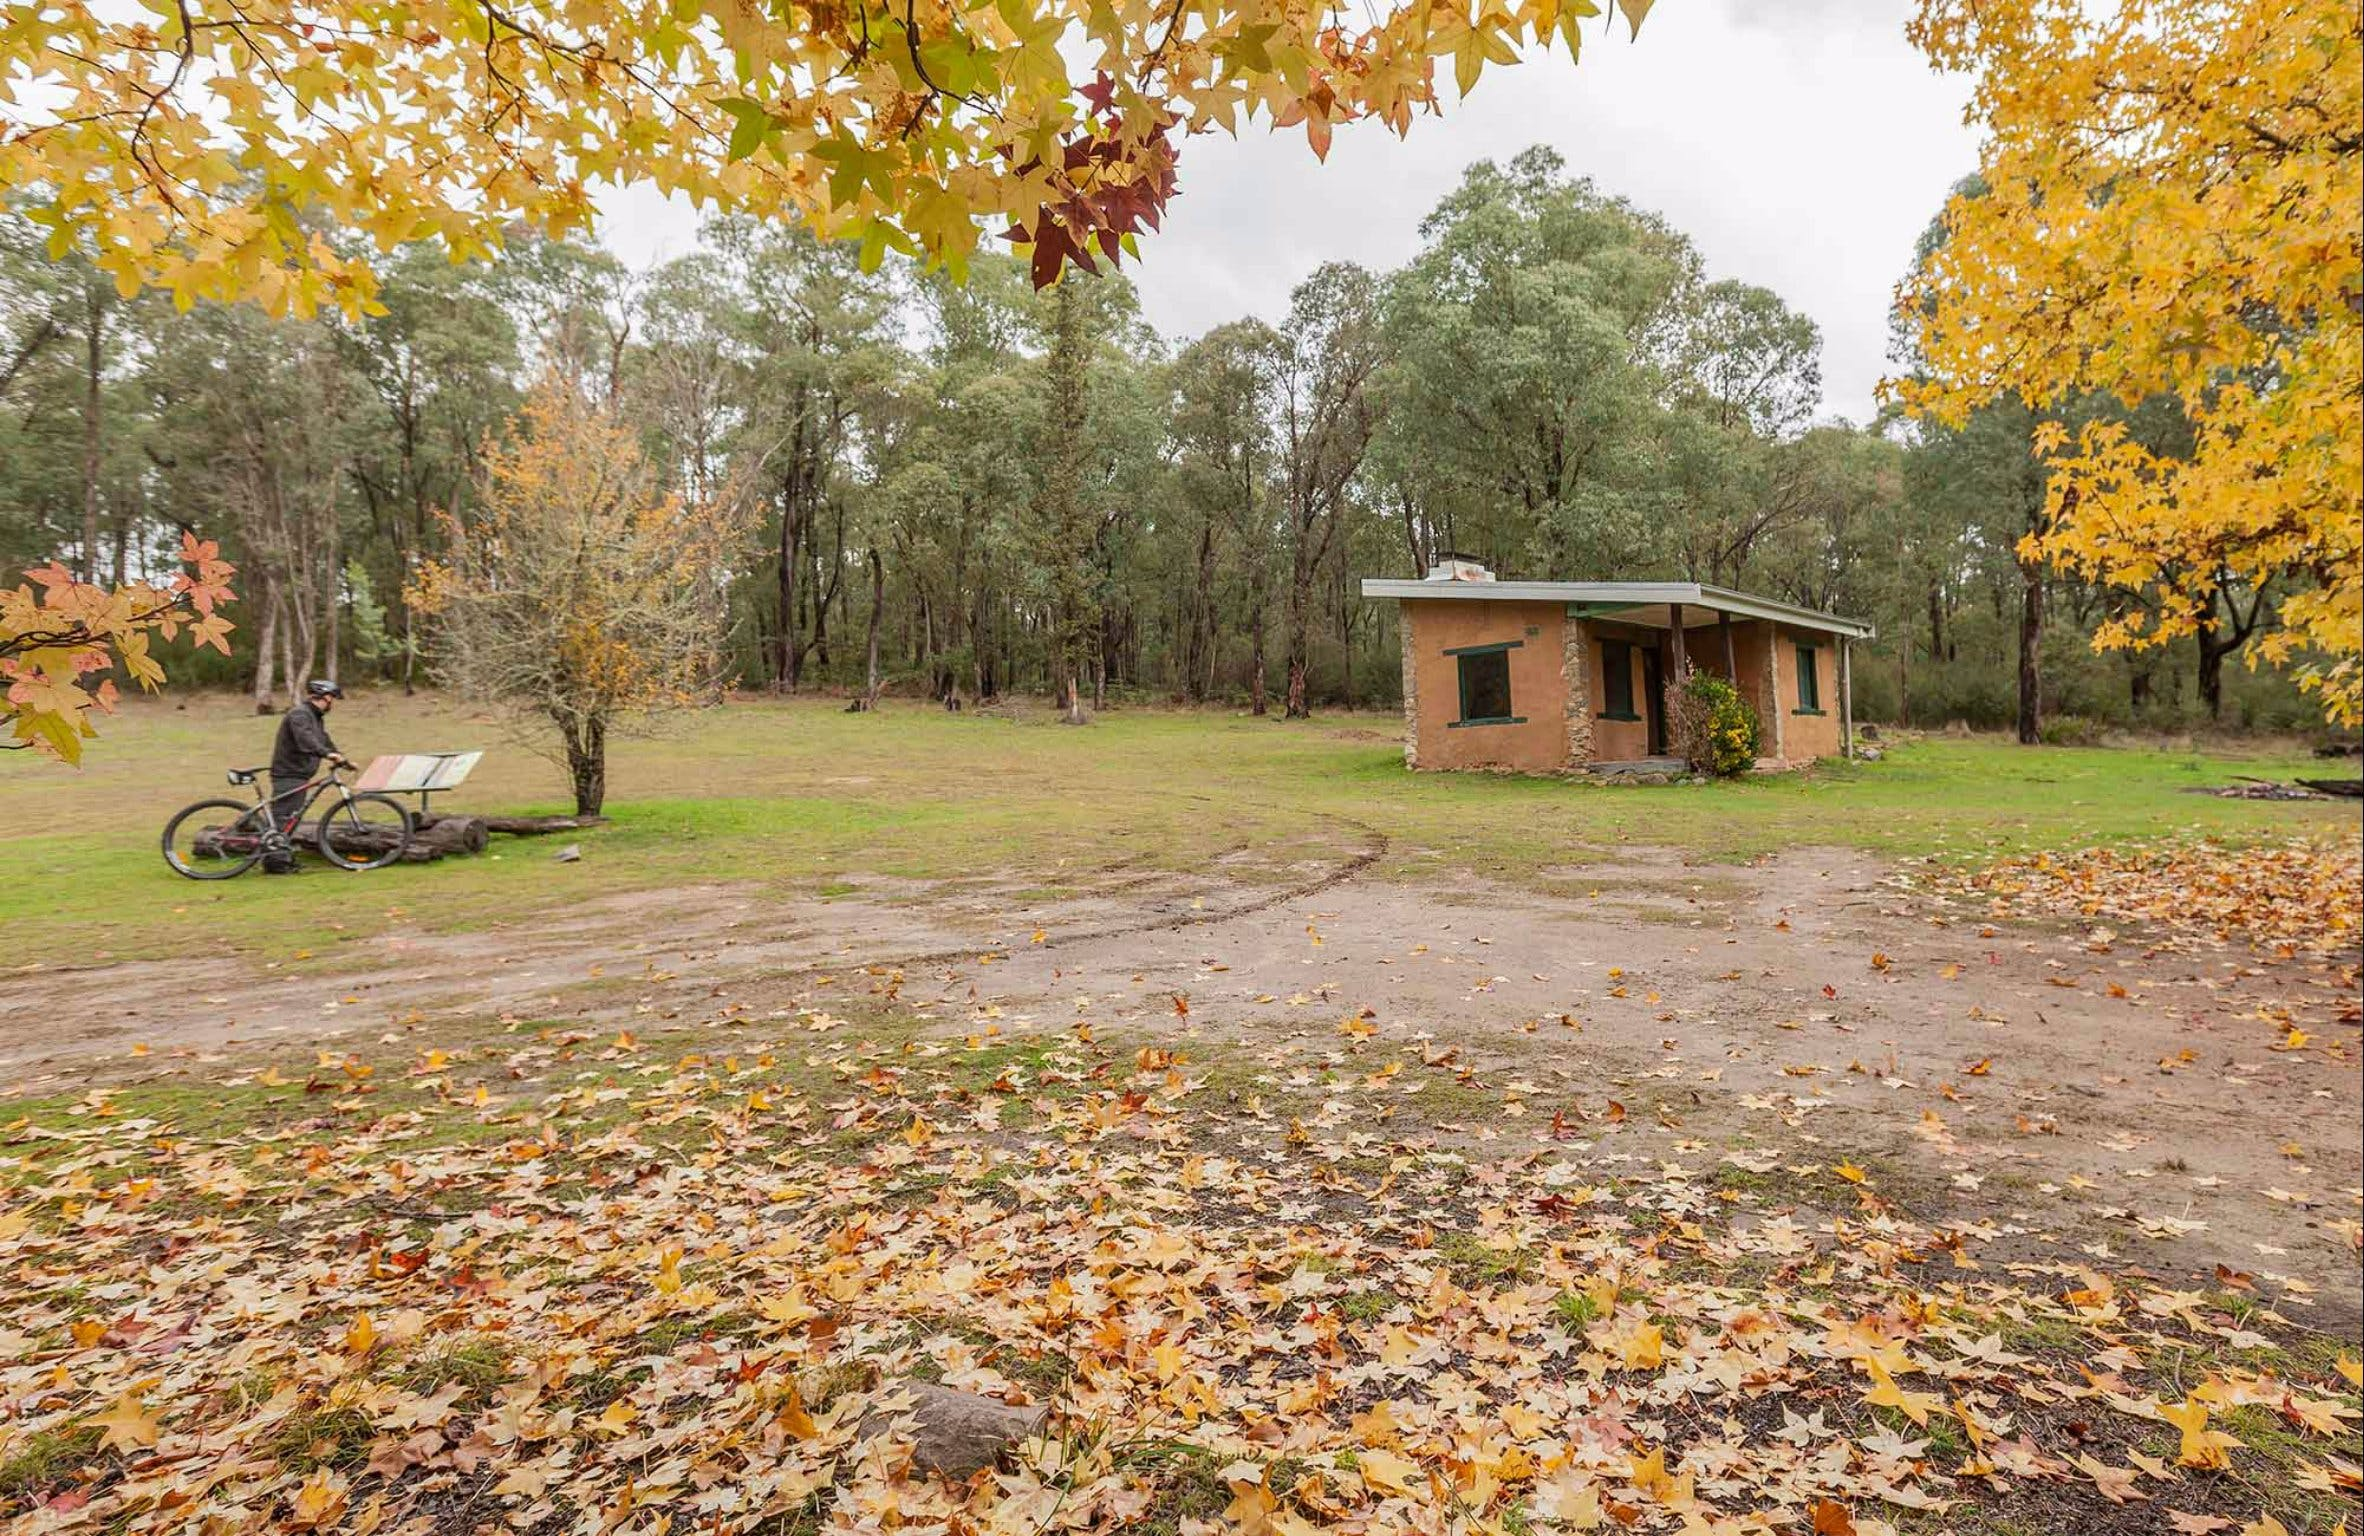 Major Clews Hut Walking Track - Accommodation Perth